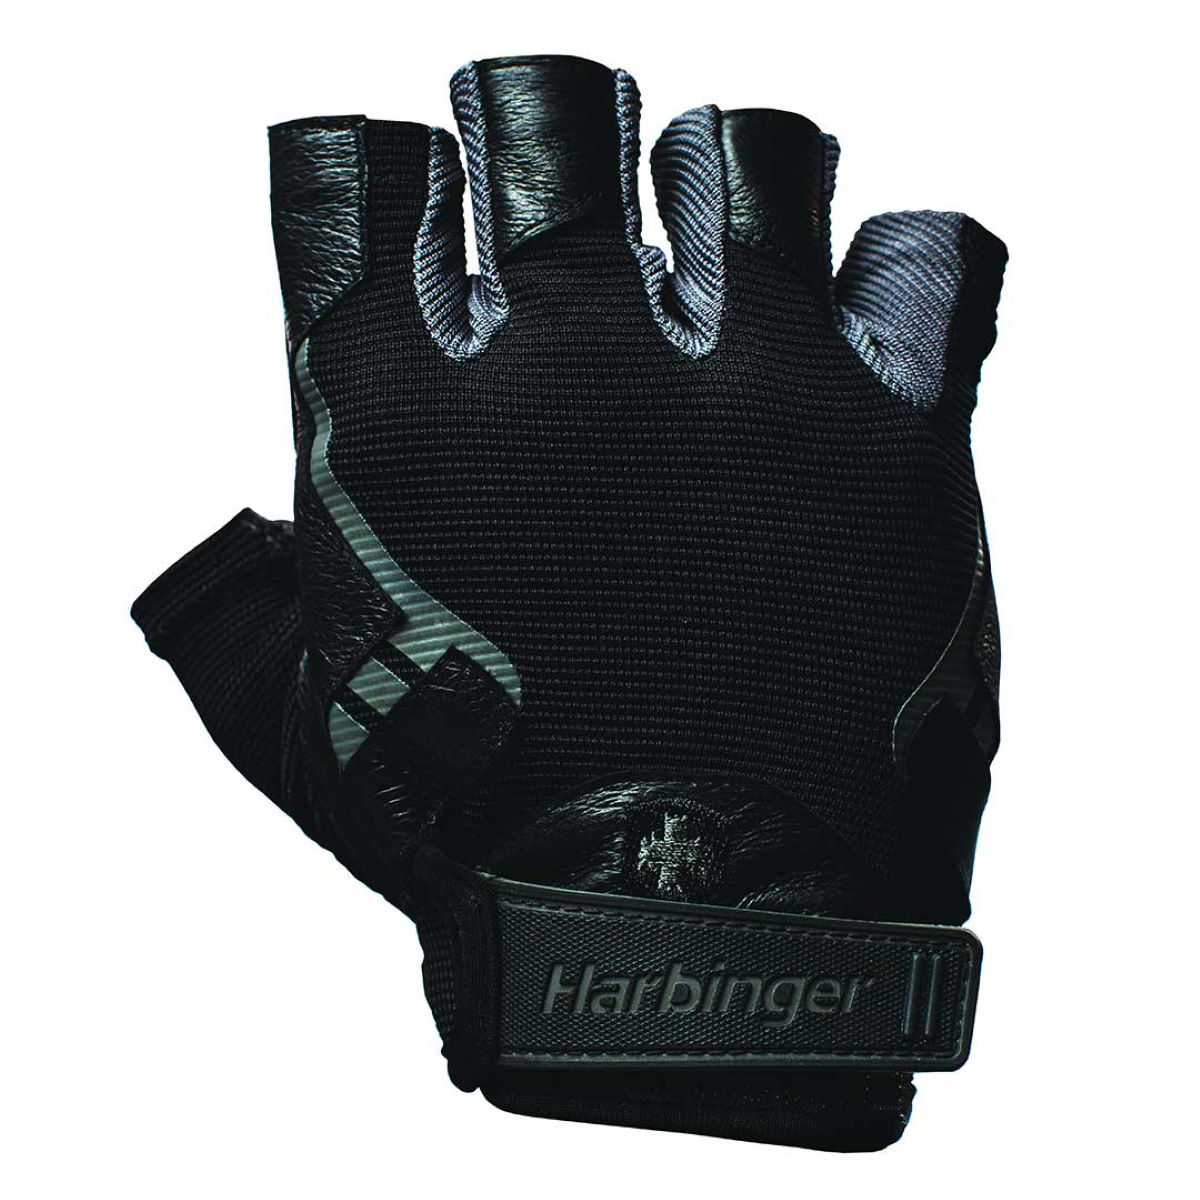 Harbinger Pro Gloves - Entrenamiento general